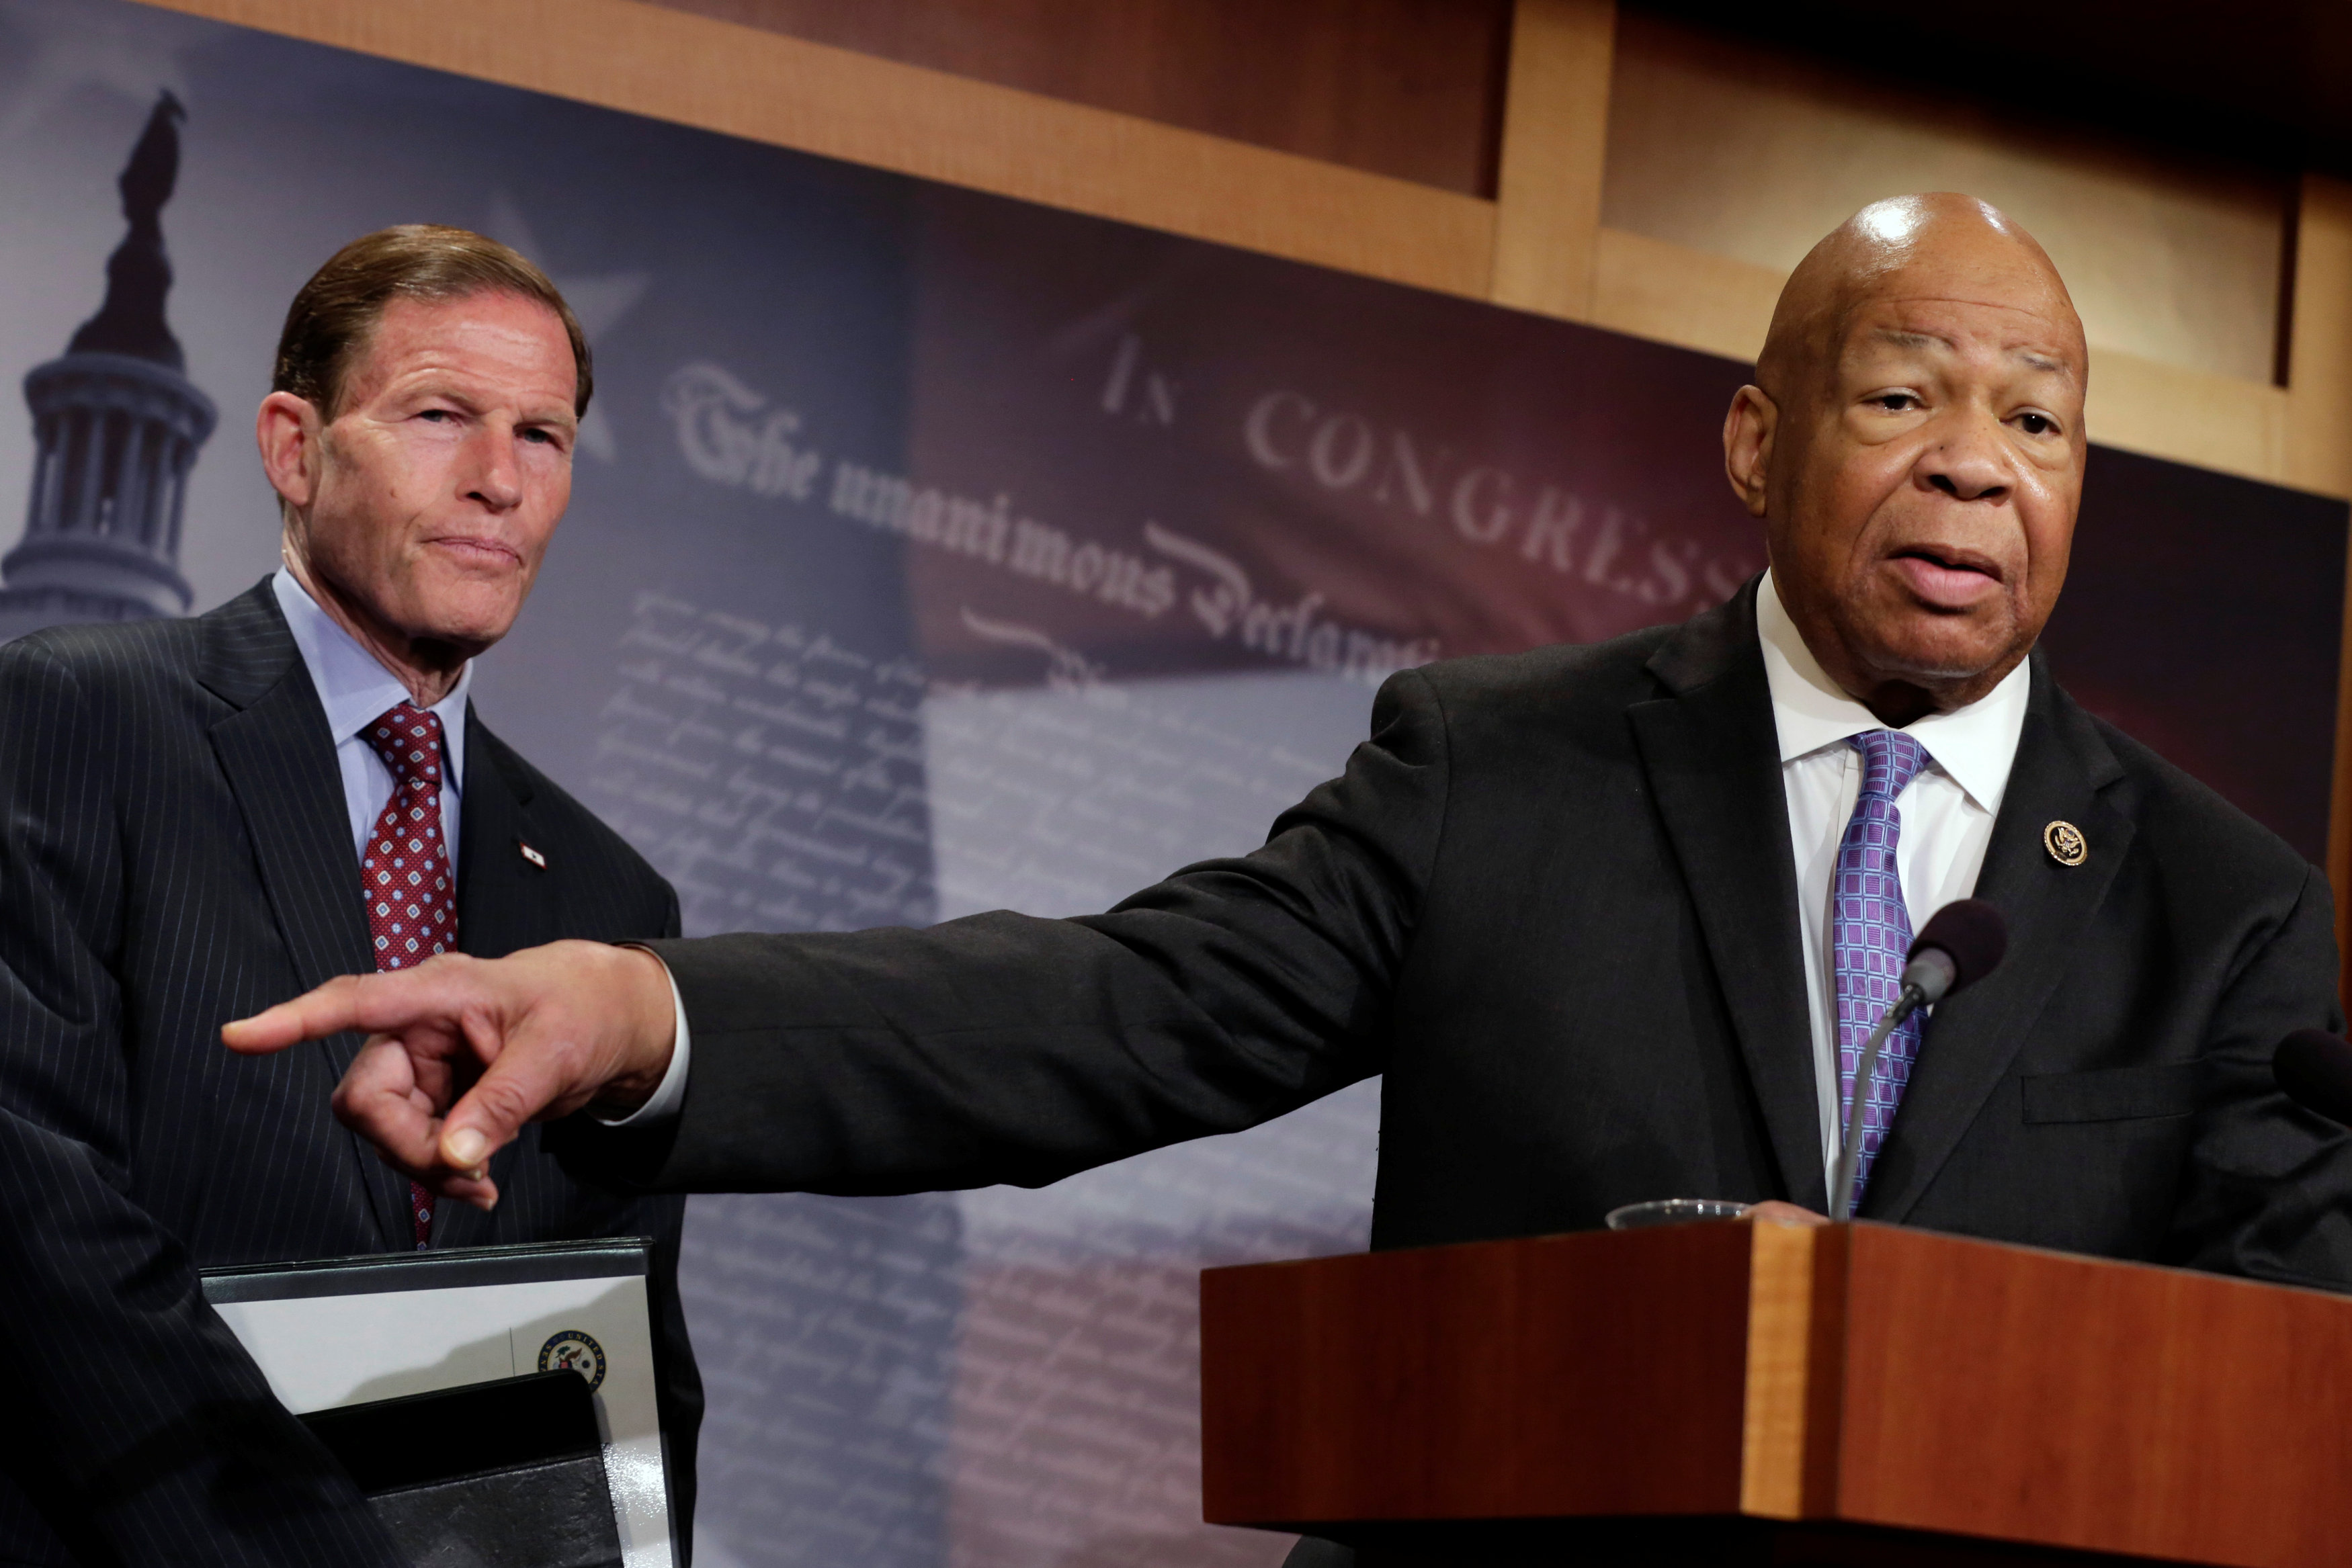 House Oversight and Government Reform Committee ranking member Representative, Elijah Cummings (D-MD) speaks about former national security adviser Michael Flynn during a news conference on President Trump's first 100 days on Capitol Hill in Washington on April 27, 2017. (REUTERS/Yuri Gripas)